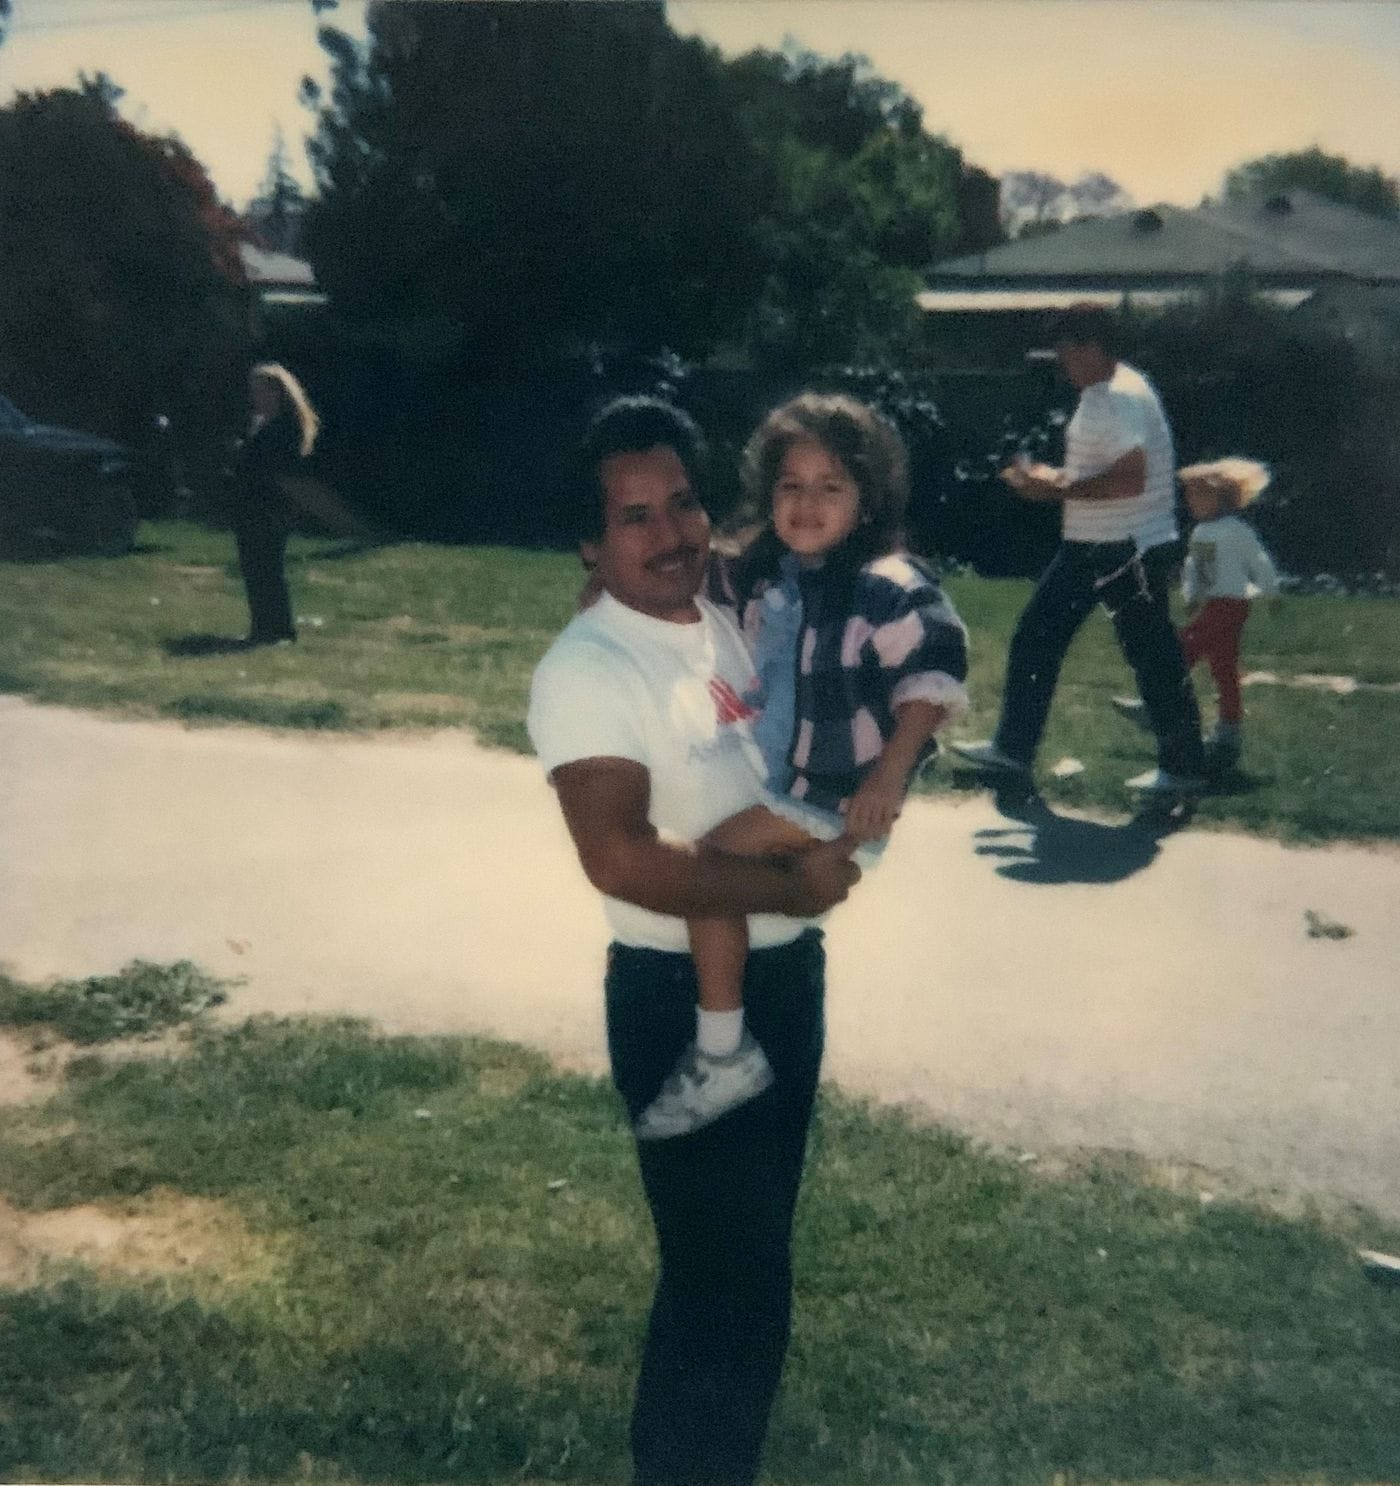 Tina Vasquez and her father in Downey, Calif., in 1990. (Family photo)